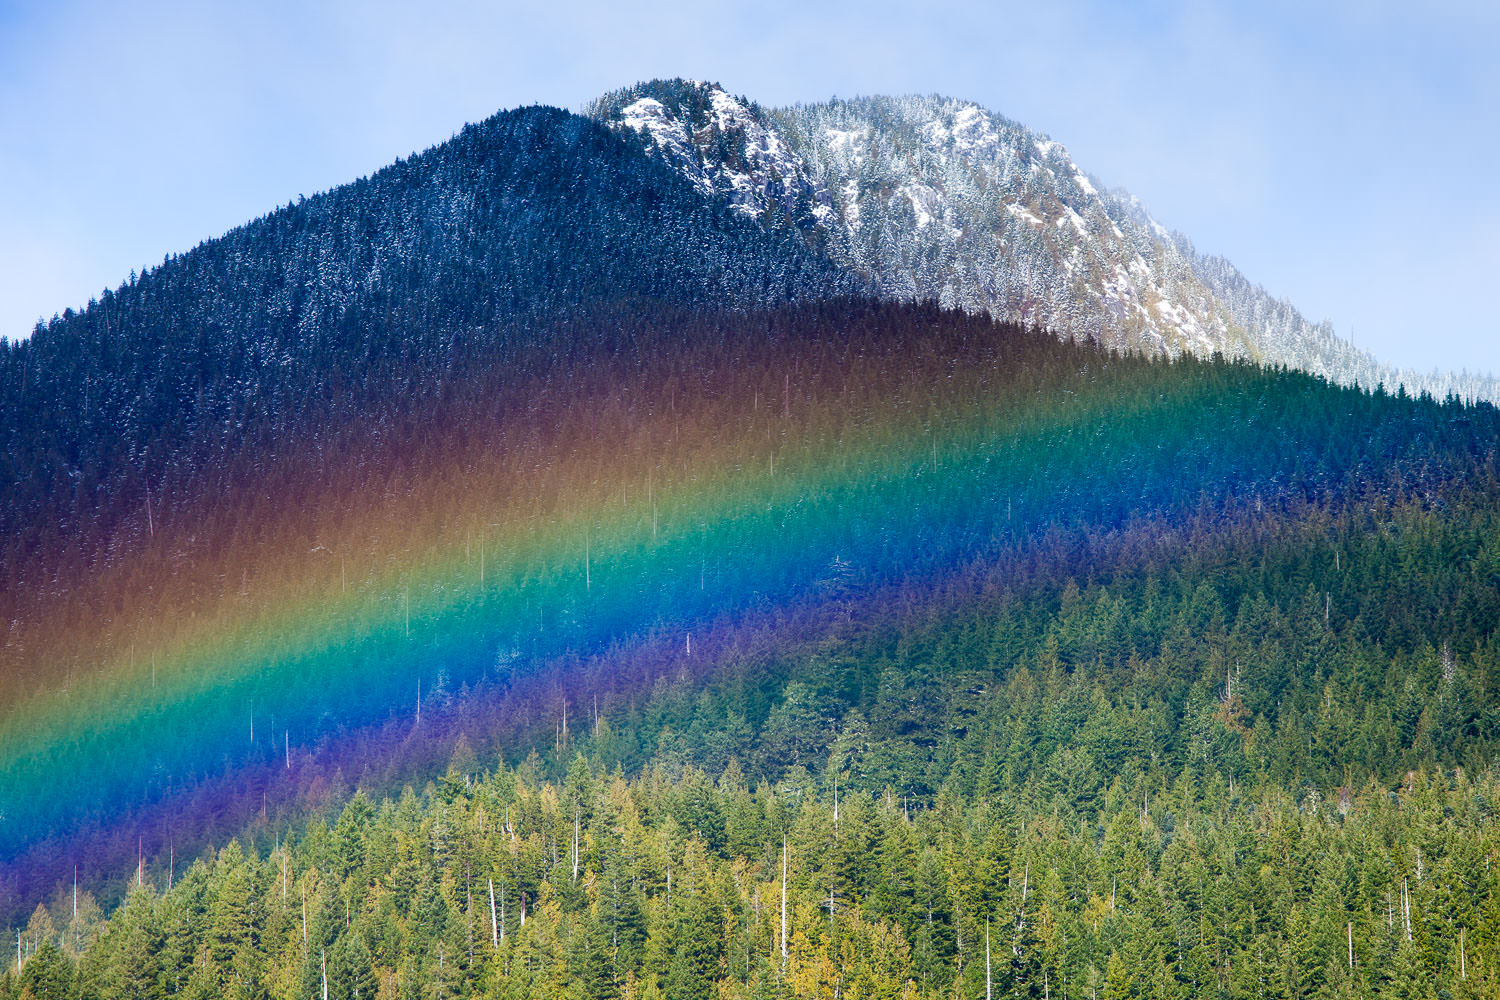 A giant rainbow arcs across the ancient forests of Edinburgh Mountain near Port Renfrew. I've never seen a rainbow so intense or that hugged the land so tightly. As new roads and clearcuts continue to threaten the largest remaining intact old-growth forest here on southern Vancouver Island, I couldn't help but think that the mountain was happy to see us there, working to protect its forest friends.  Canon 5D MK2   70-200 f/4L lens   1/200sec   f/8.0   ISO 200.